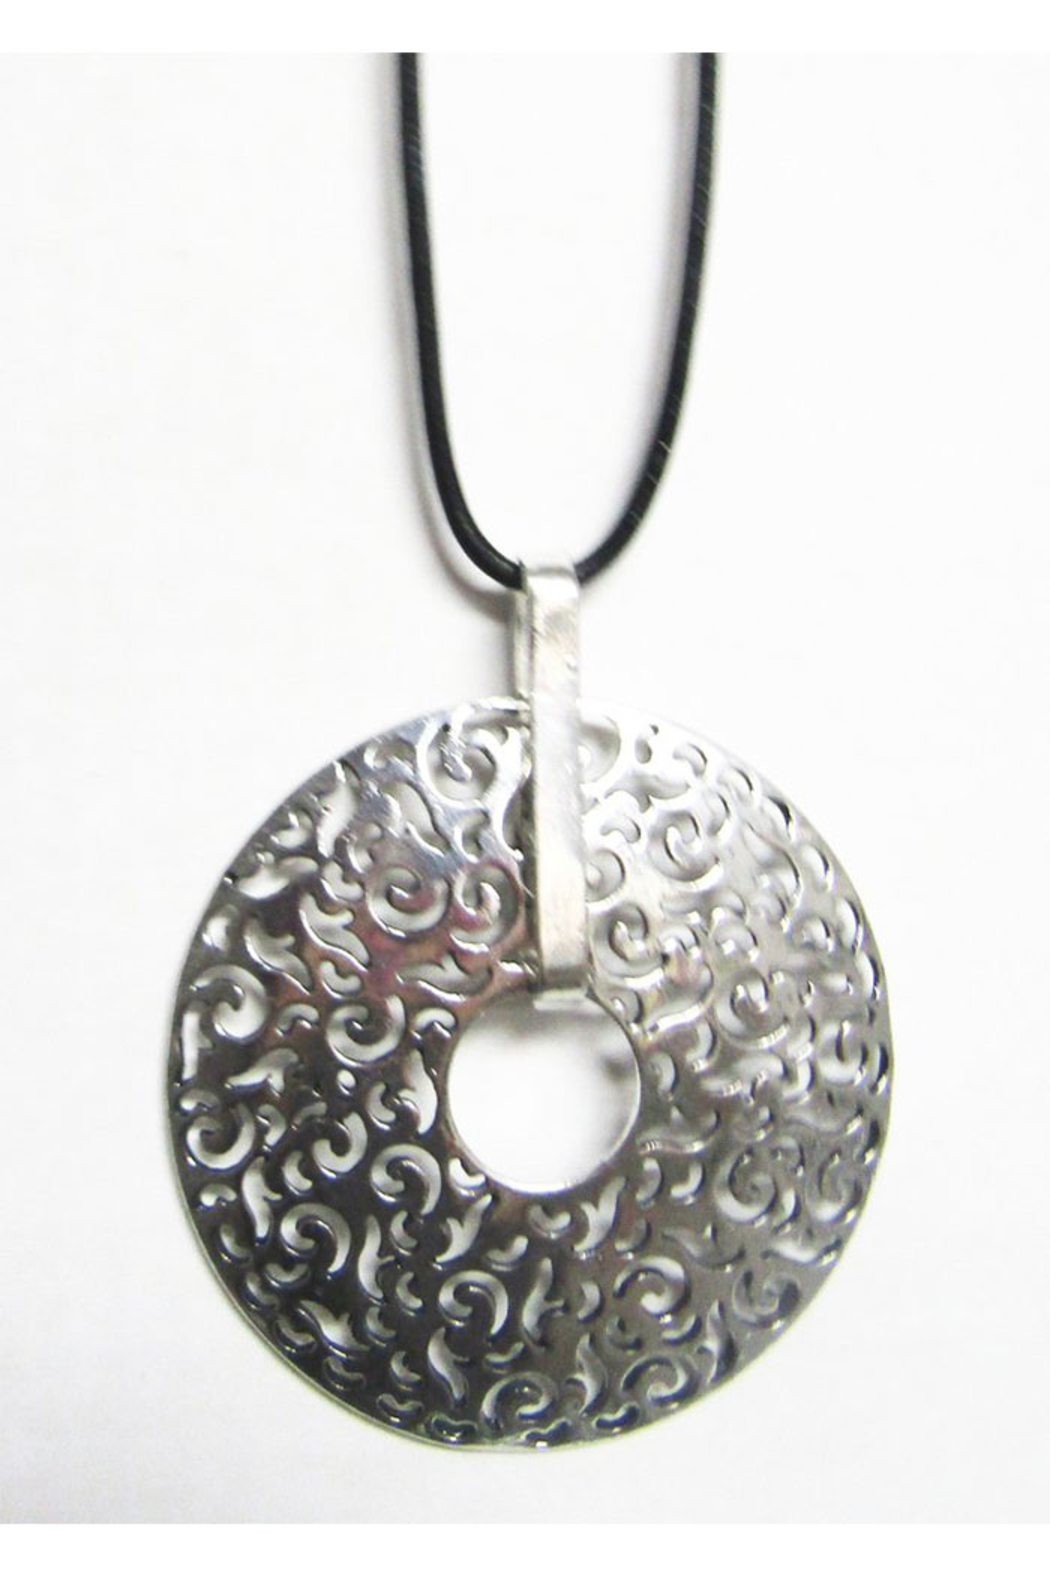 AUG Long Black Cord With Silver Metal Pendant -Filigree Circle - Main Image